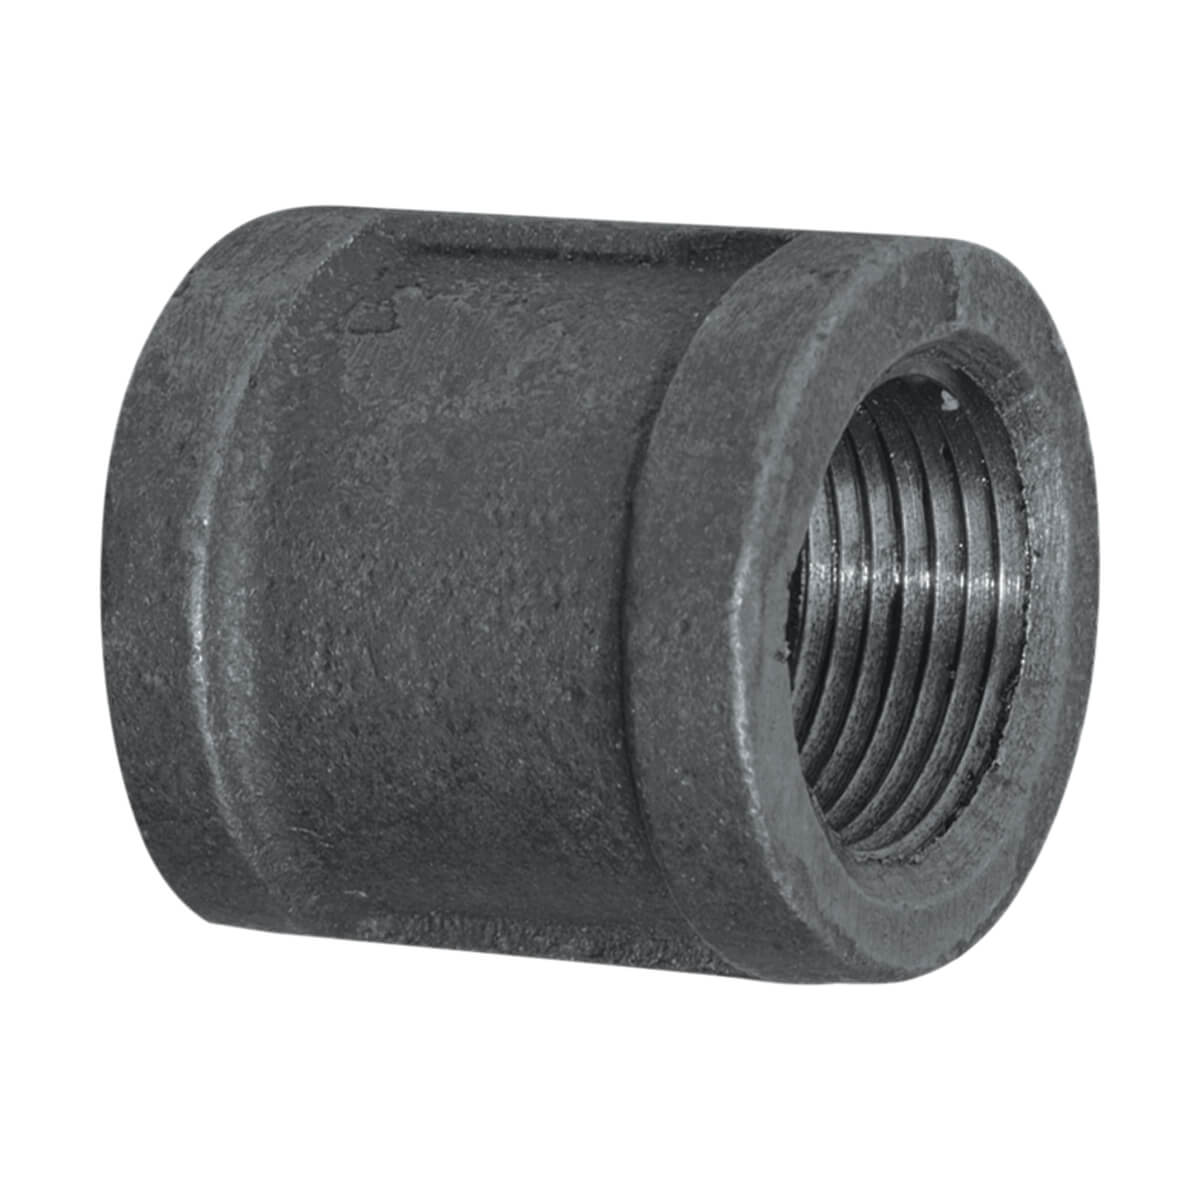 Fitting Black Iron Coupling - 3/8-in